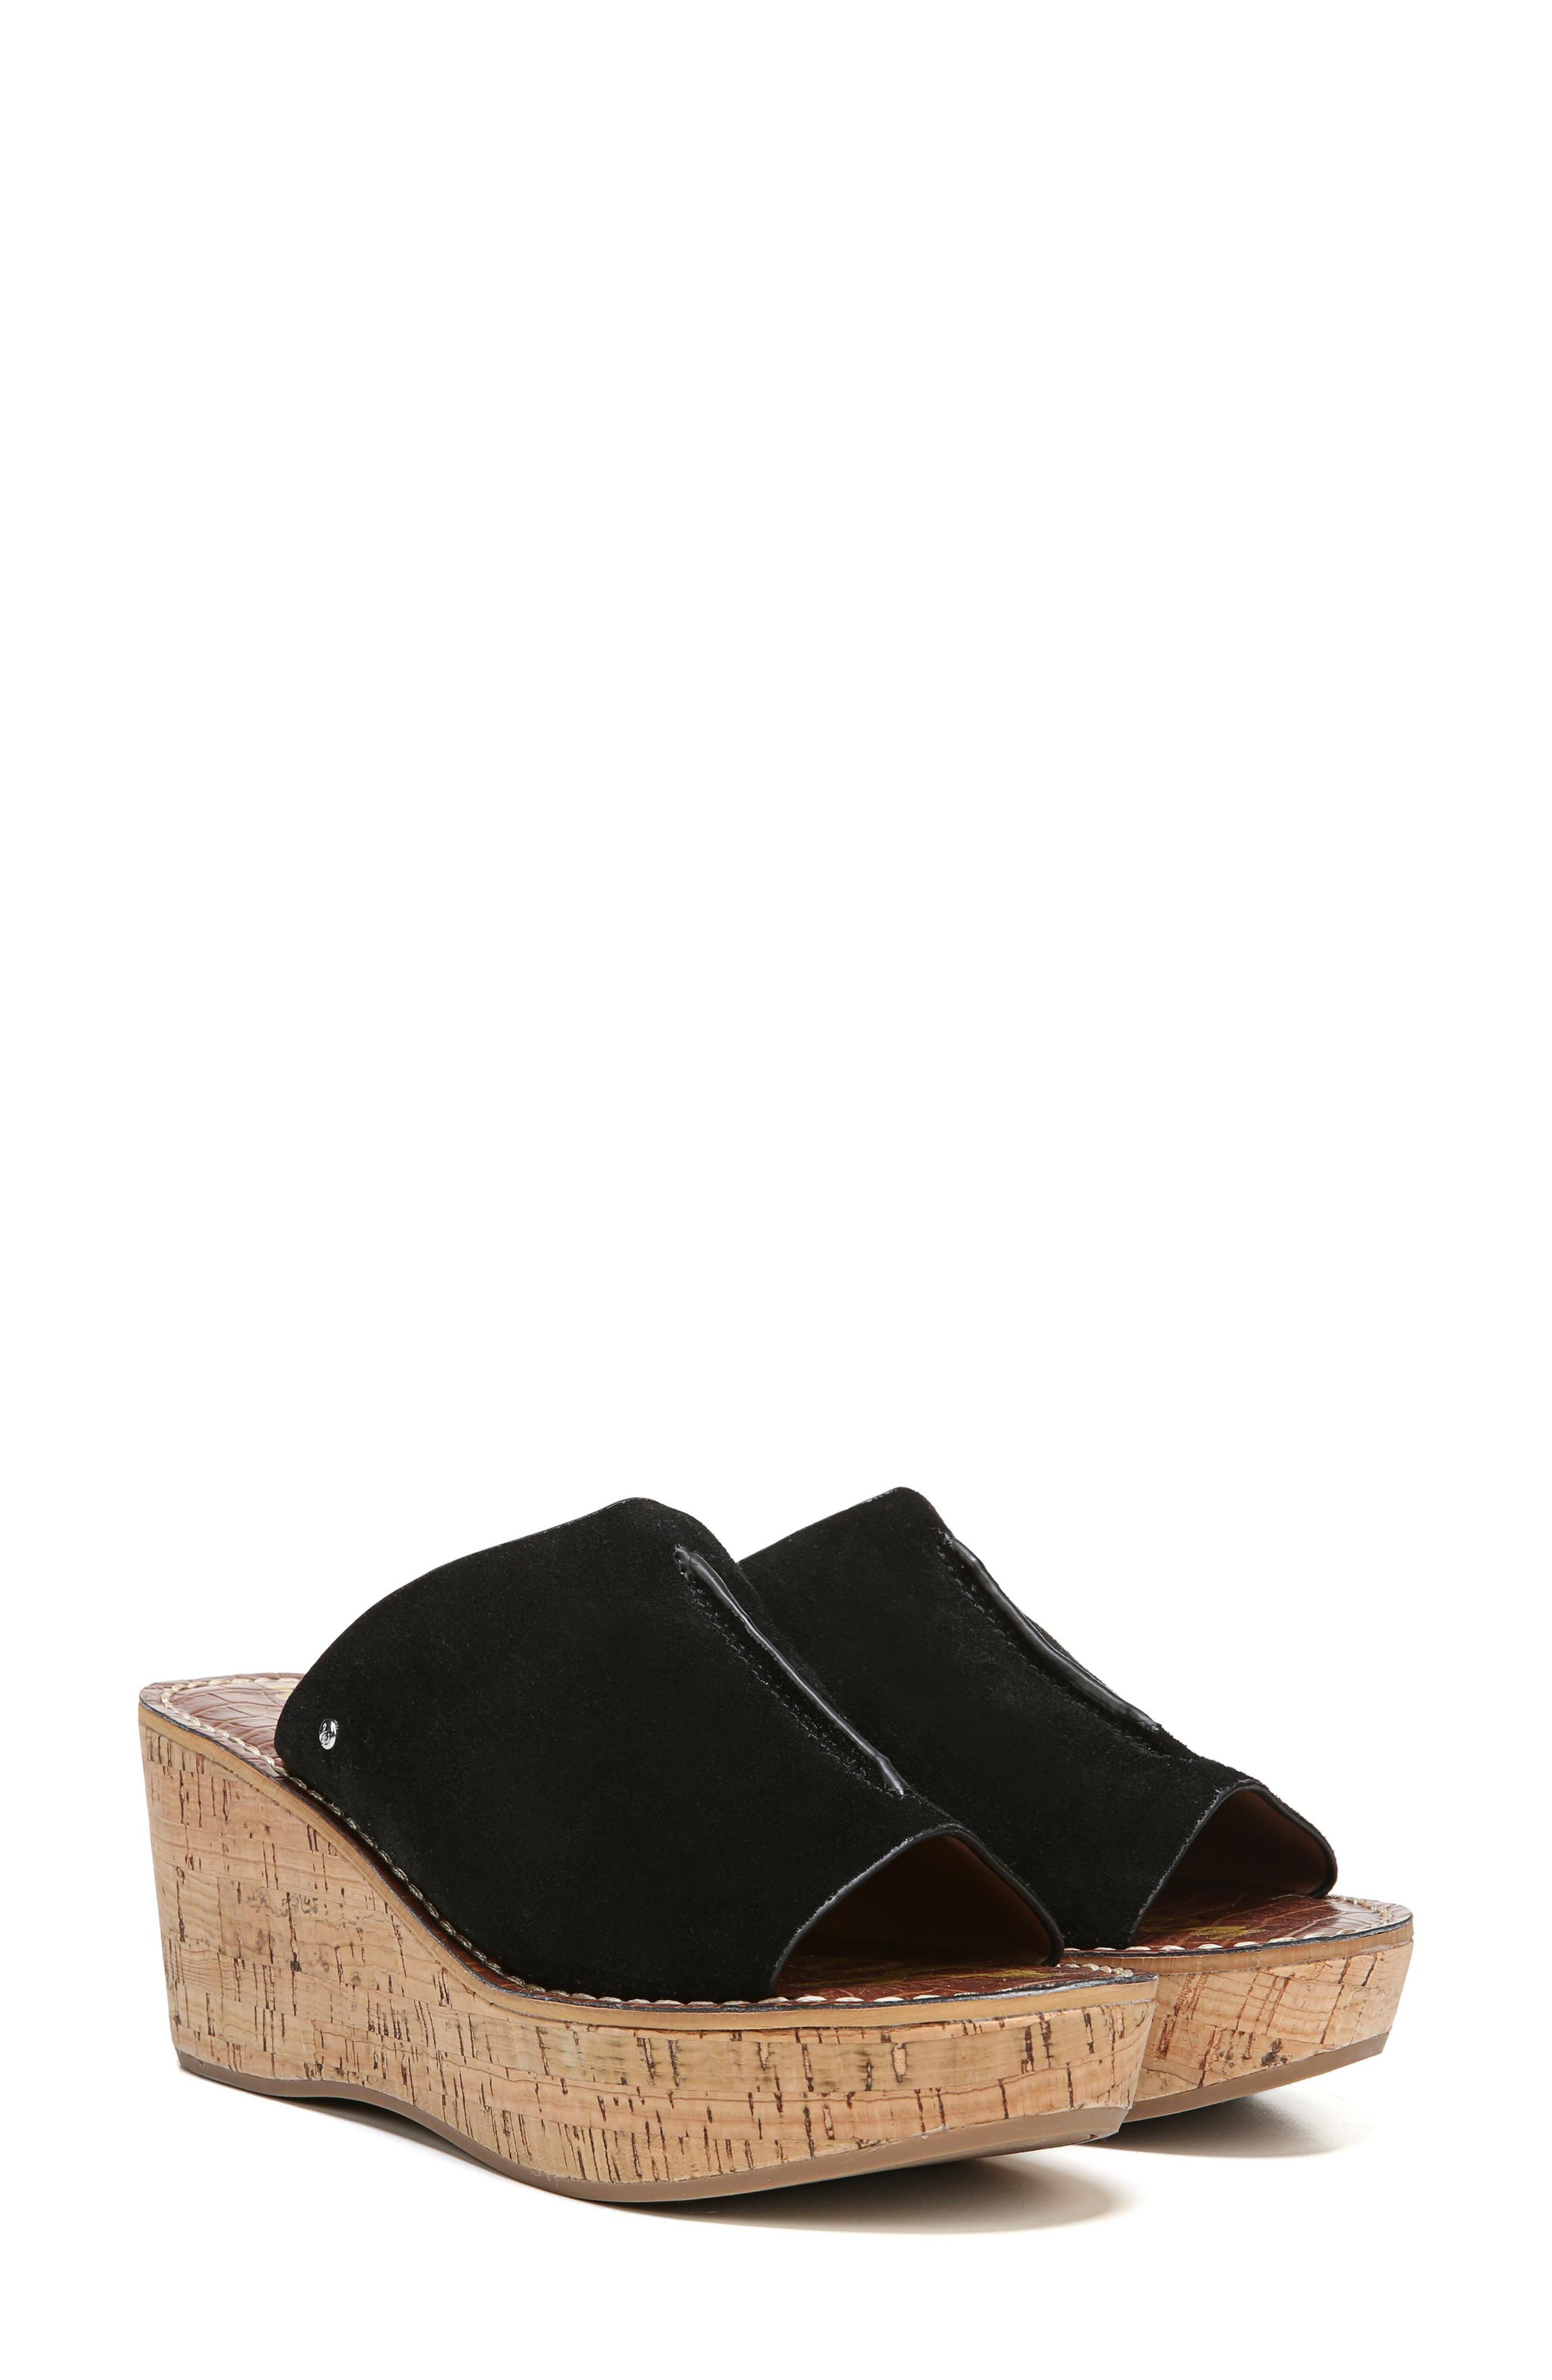 SAM EDELMAN, Ranger Platform Sandal, Alternate thumbnail 7, color, BLACK SUEDE